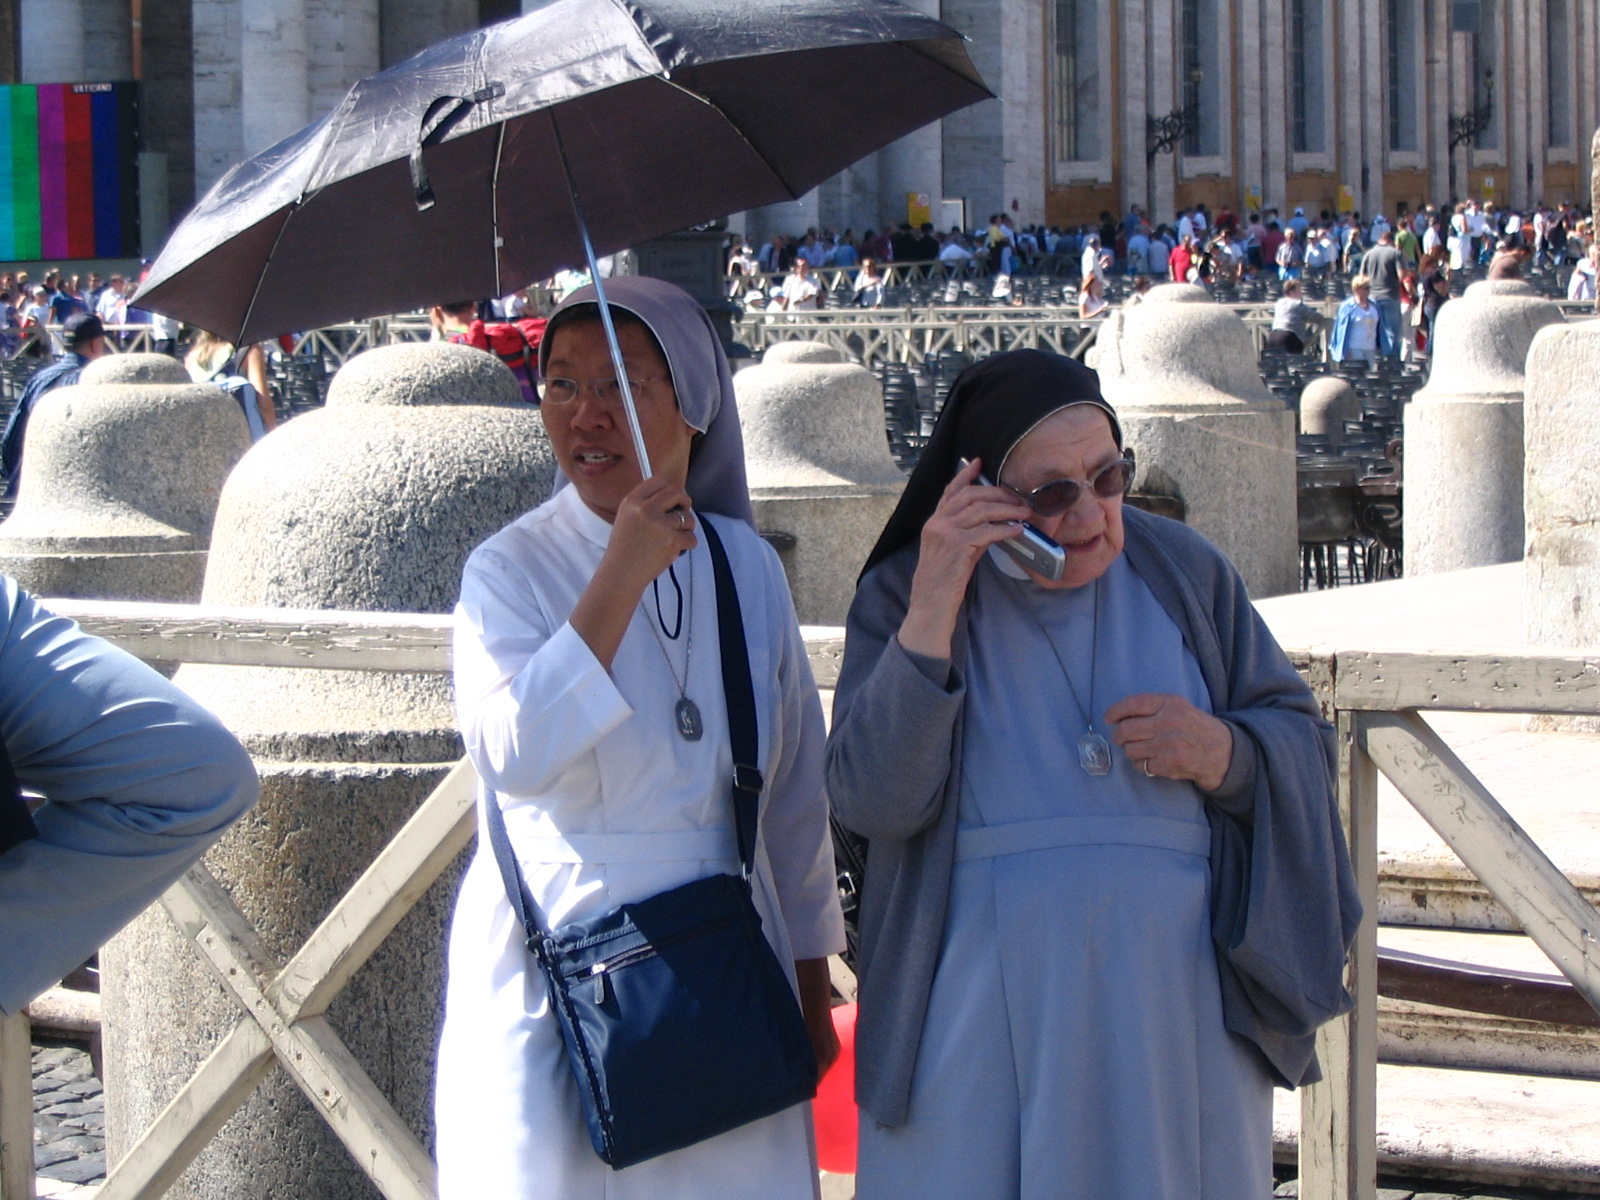 nuns at the vatican in Rome